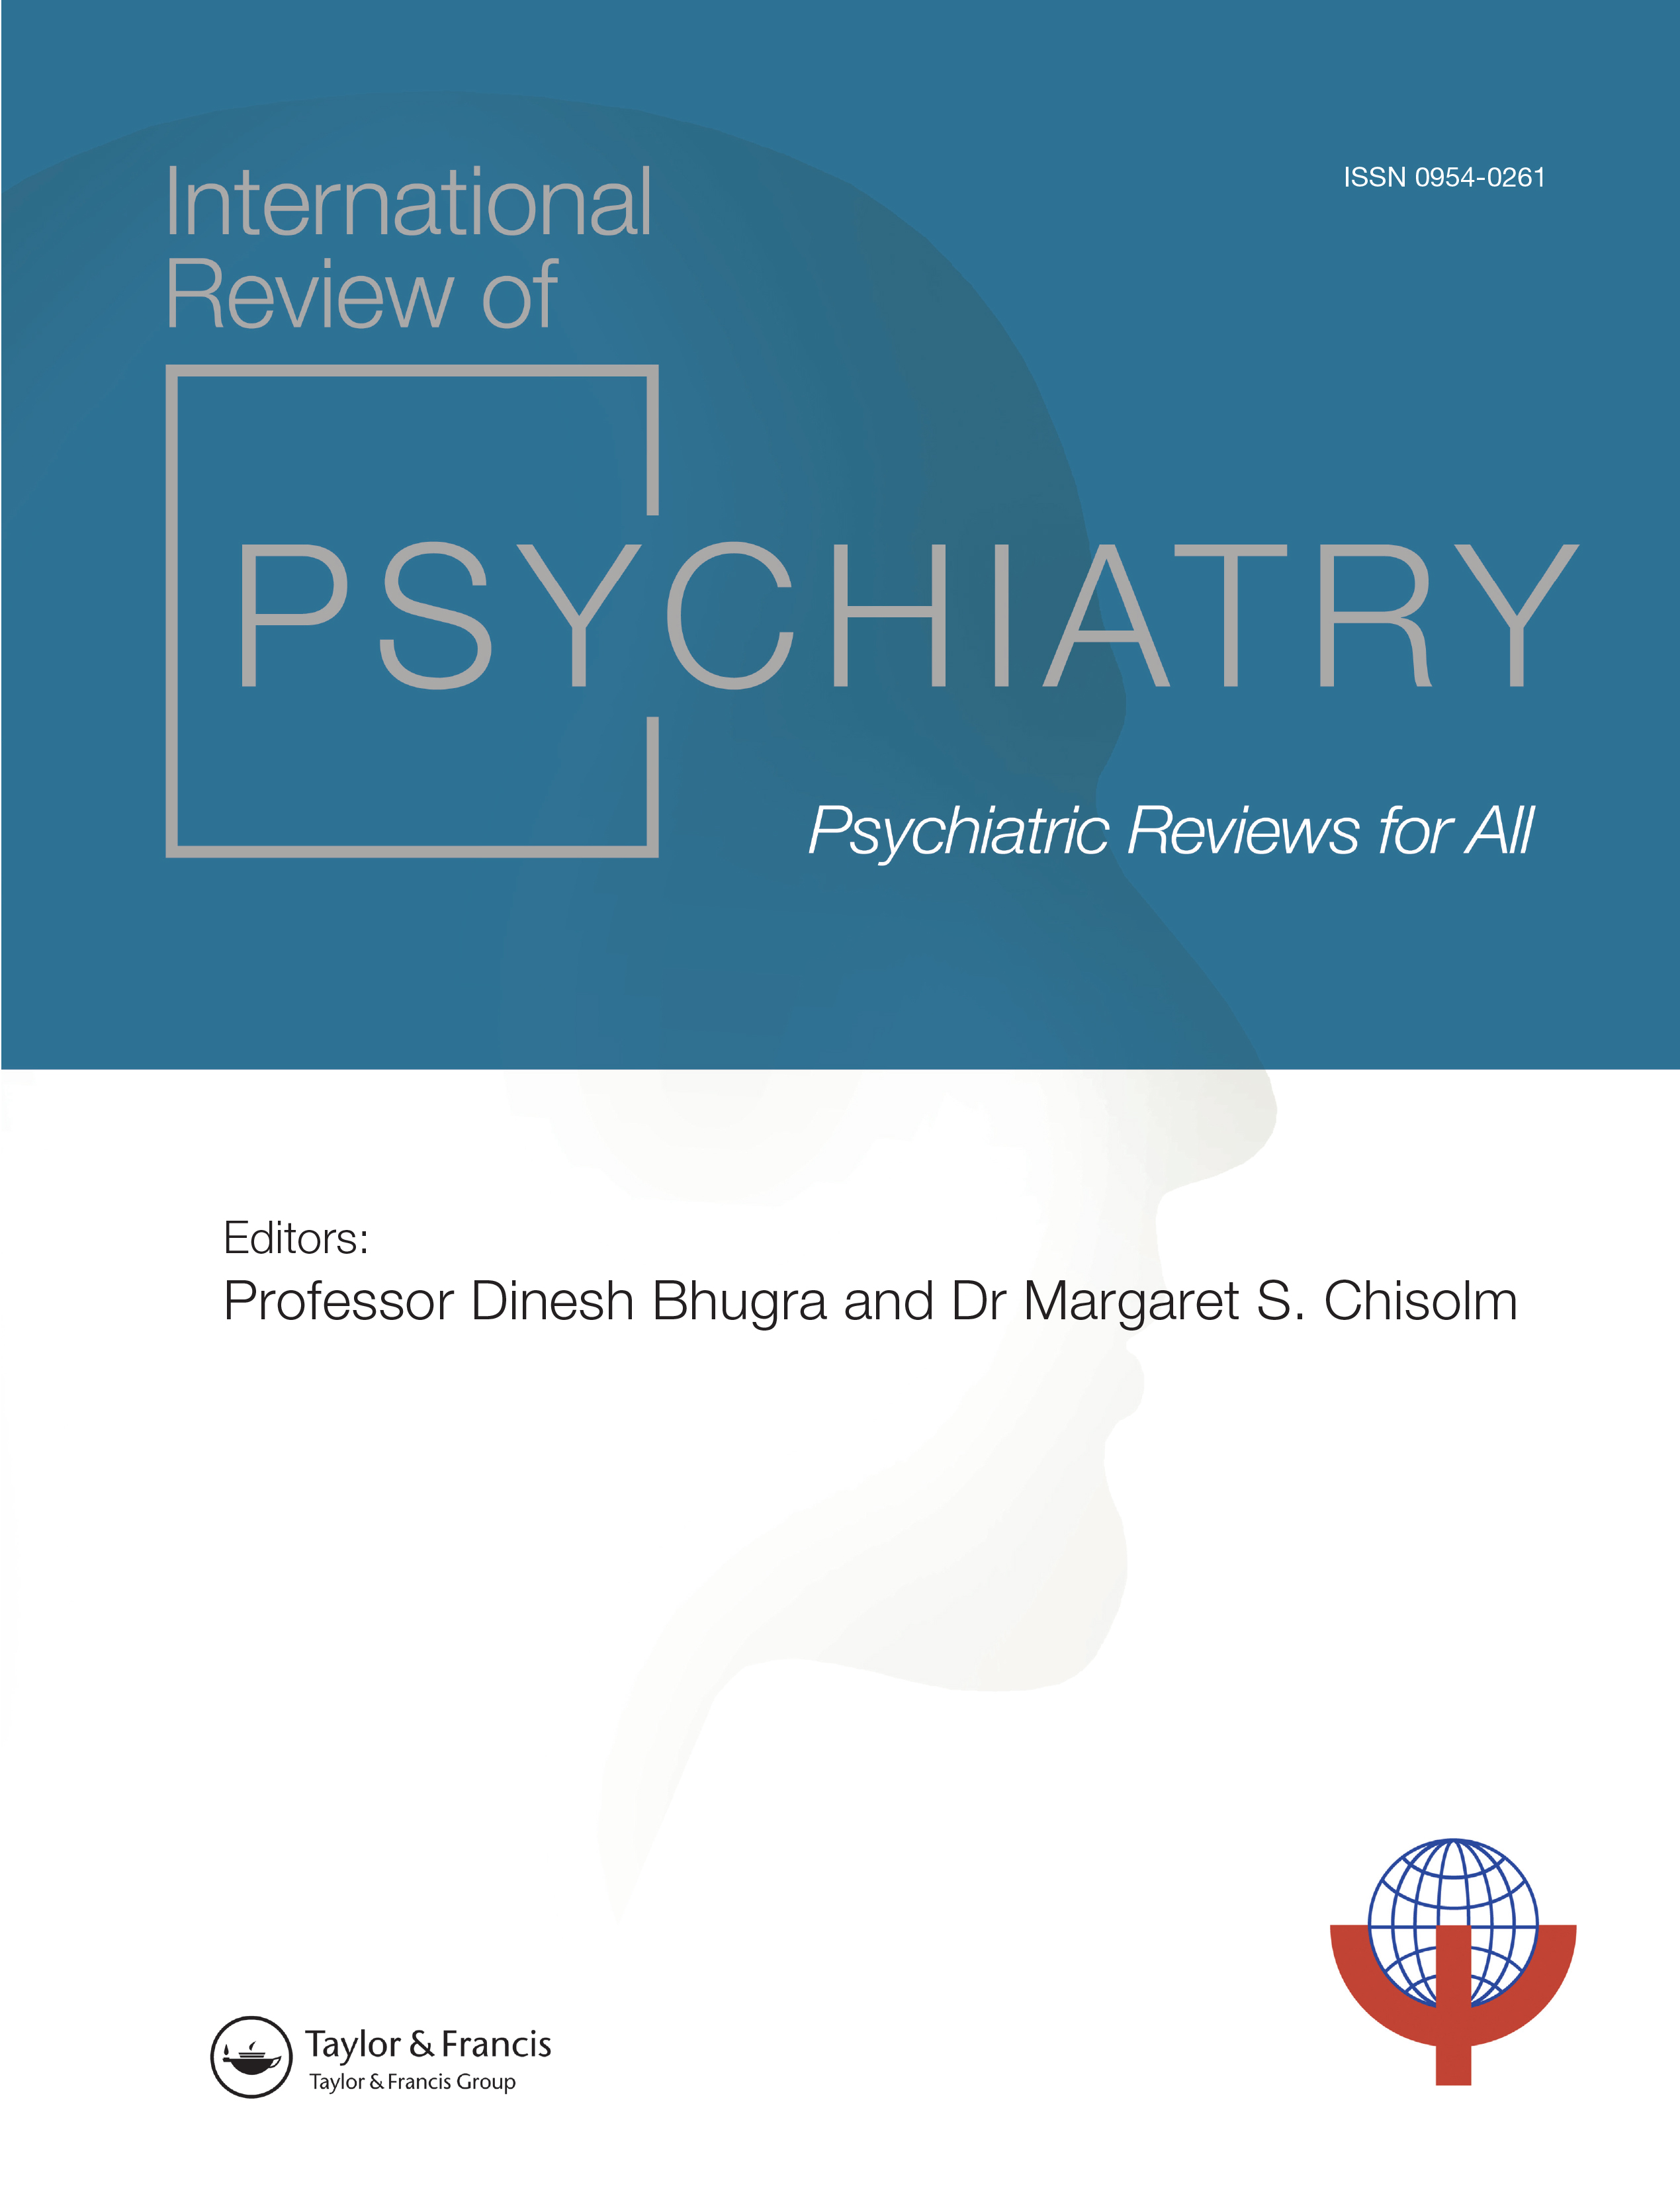 Full Article Telepsychiatry Integration Of Mental Health Services Into Rural Primary Care Settings